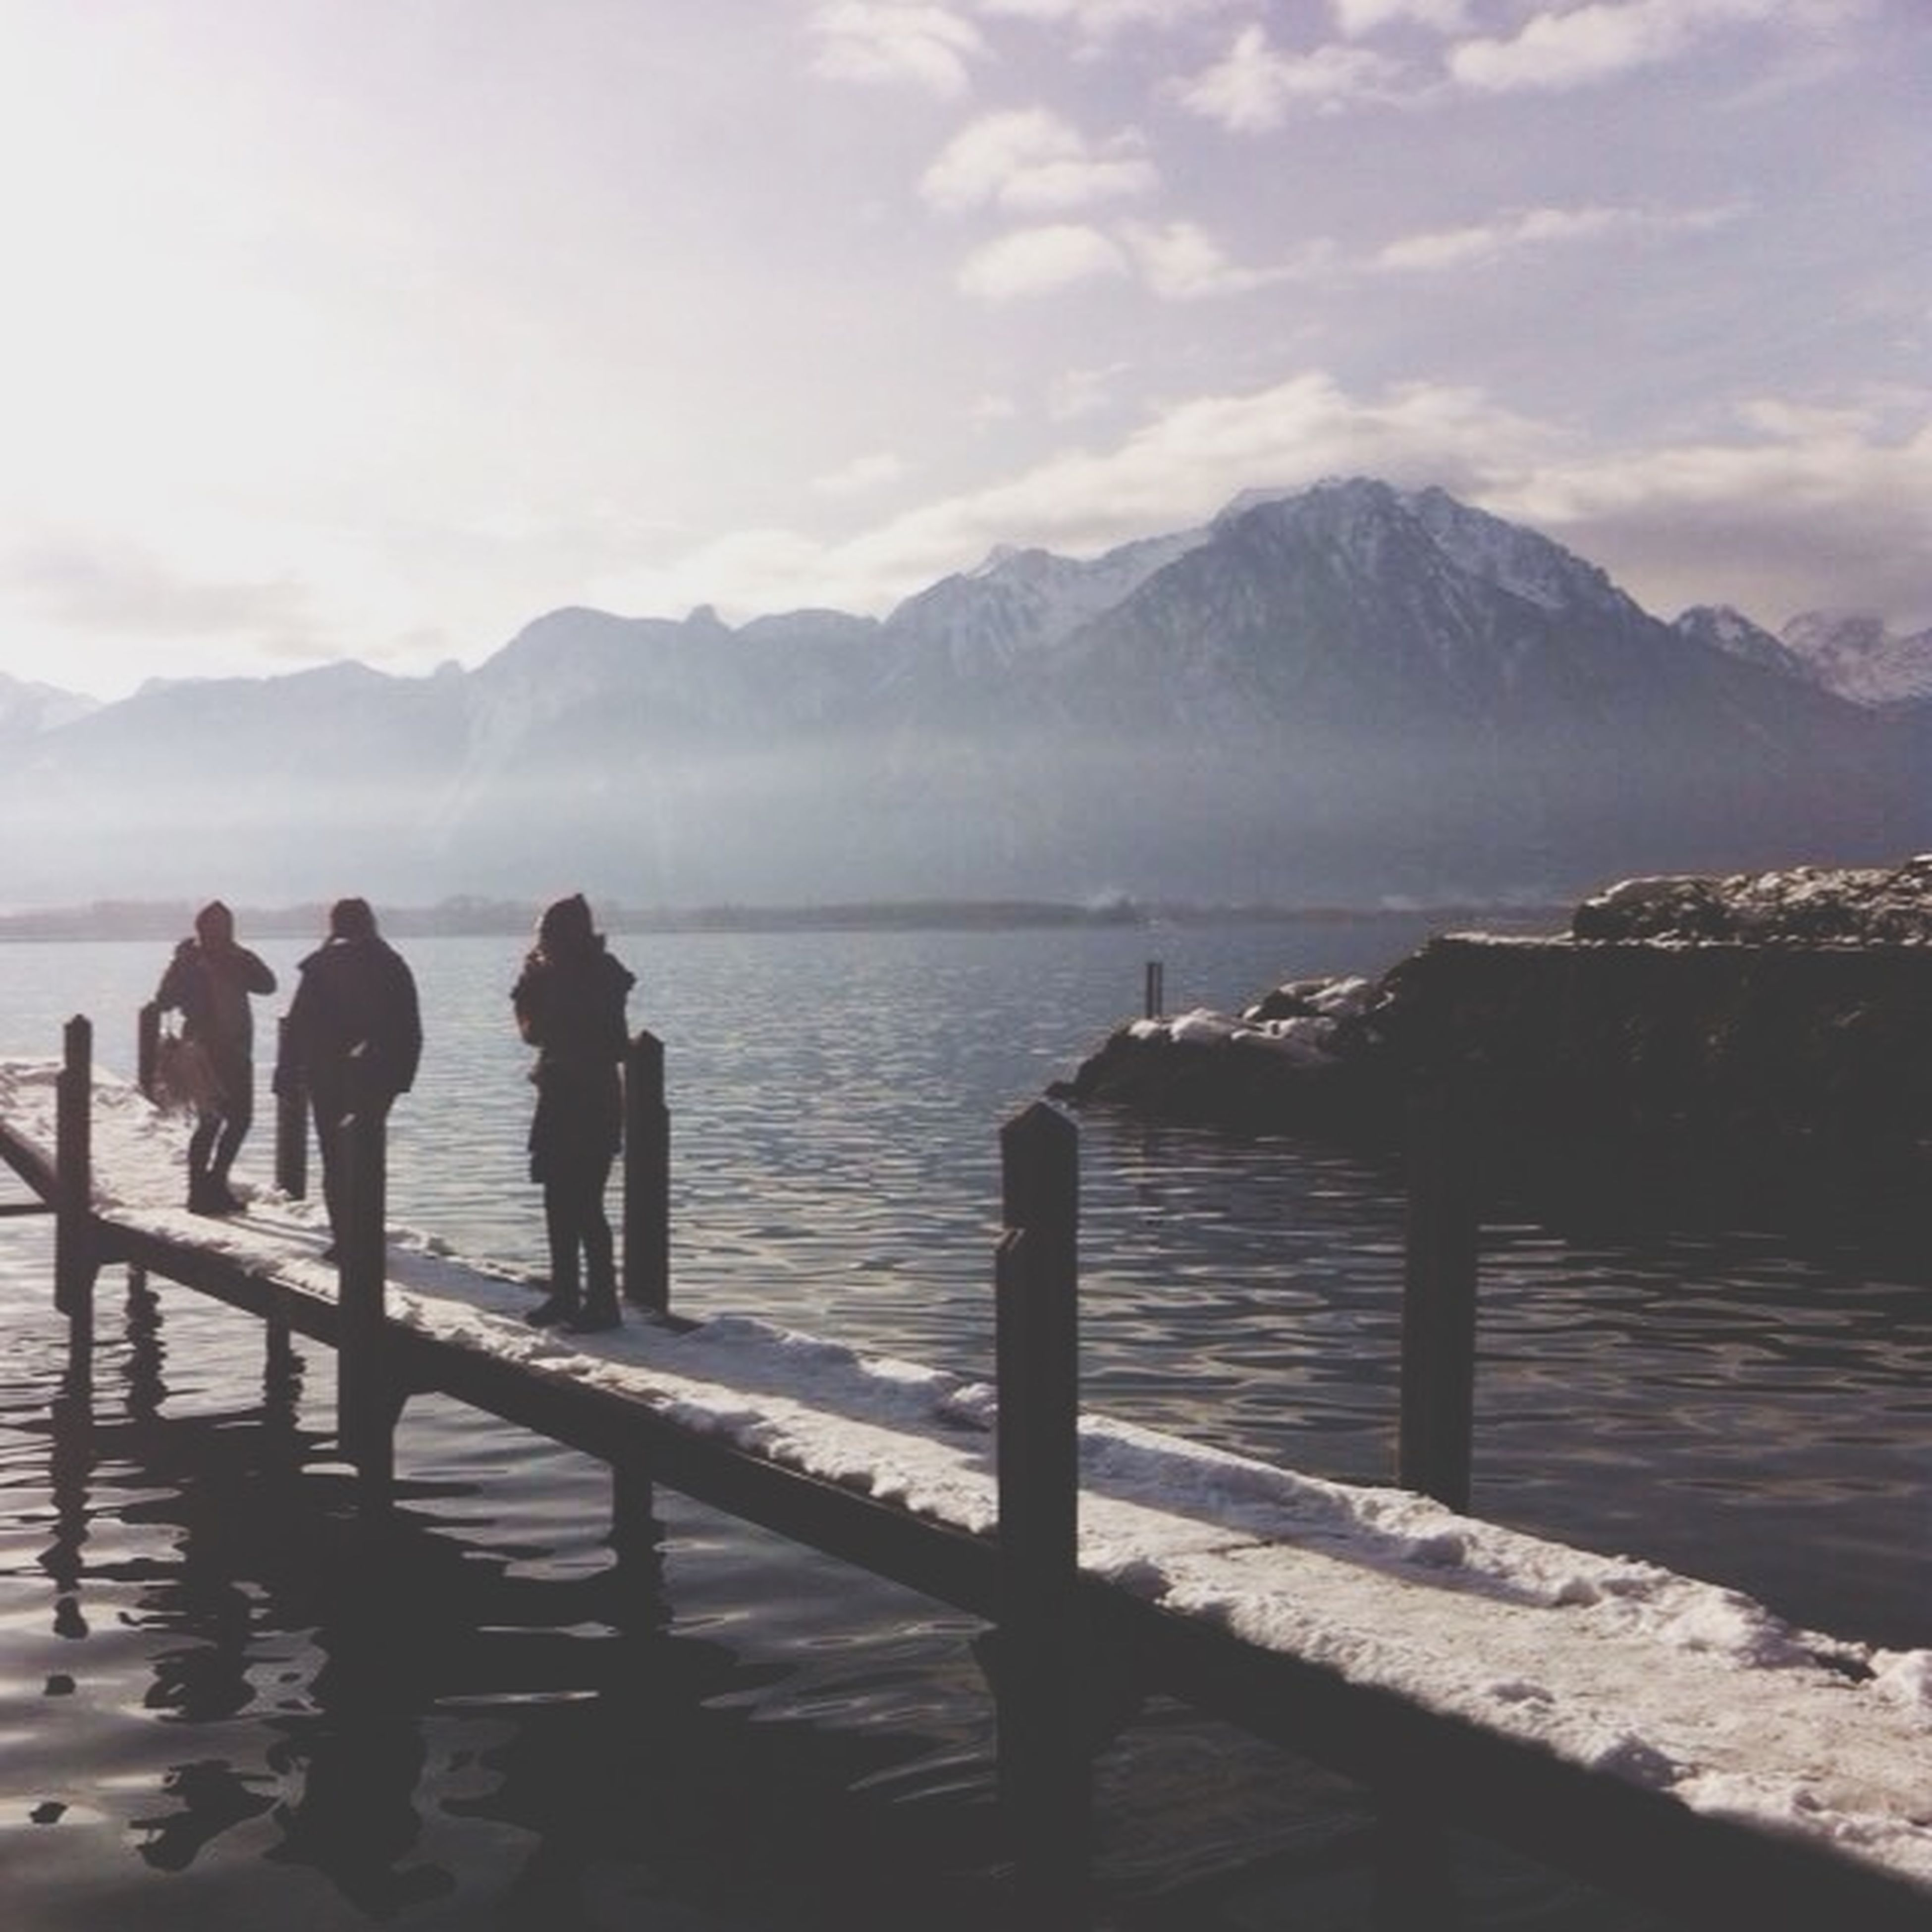 water, mountain, sky, sea, railing, men, lifestyles, mountain range, scenics, nature, tranquility, leisure activity, tranquil scene, beauty in nature, person, cloud - sky, pier, standing, walking